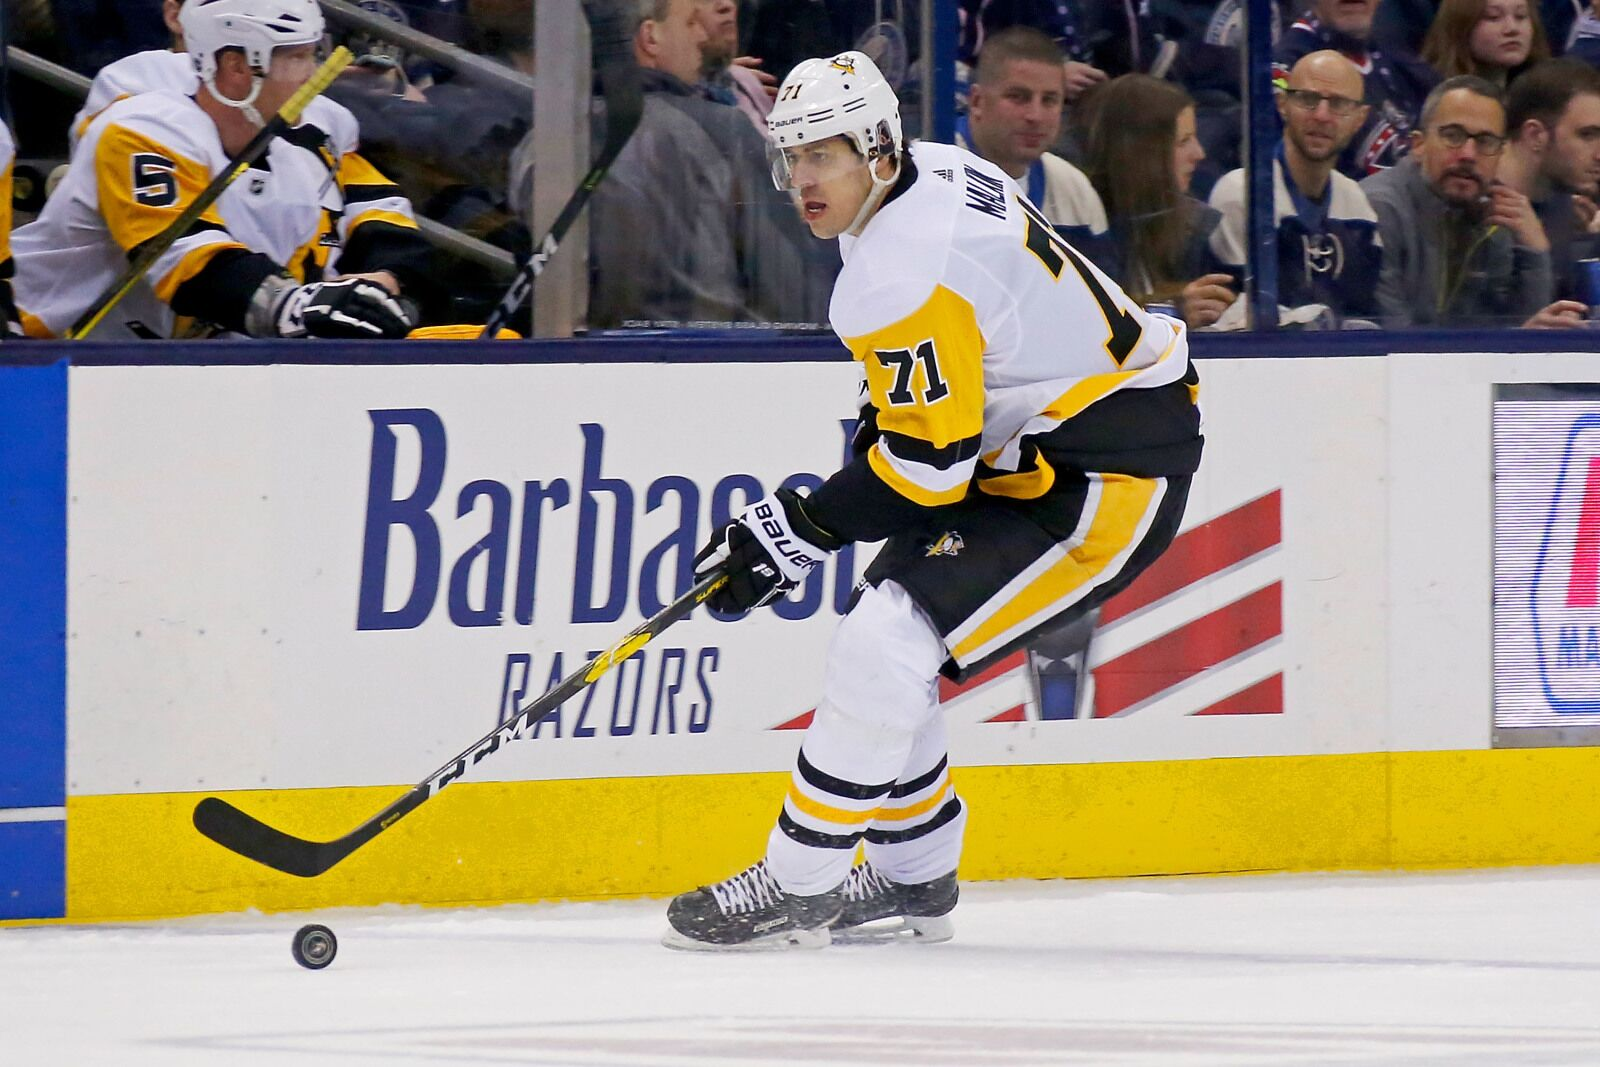 With Crosby Out, Malkin Will be an MVP Candidate for the Penguins